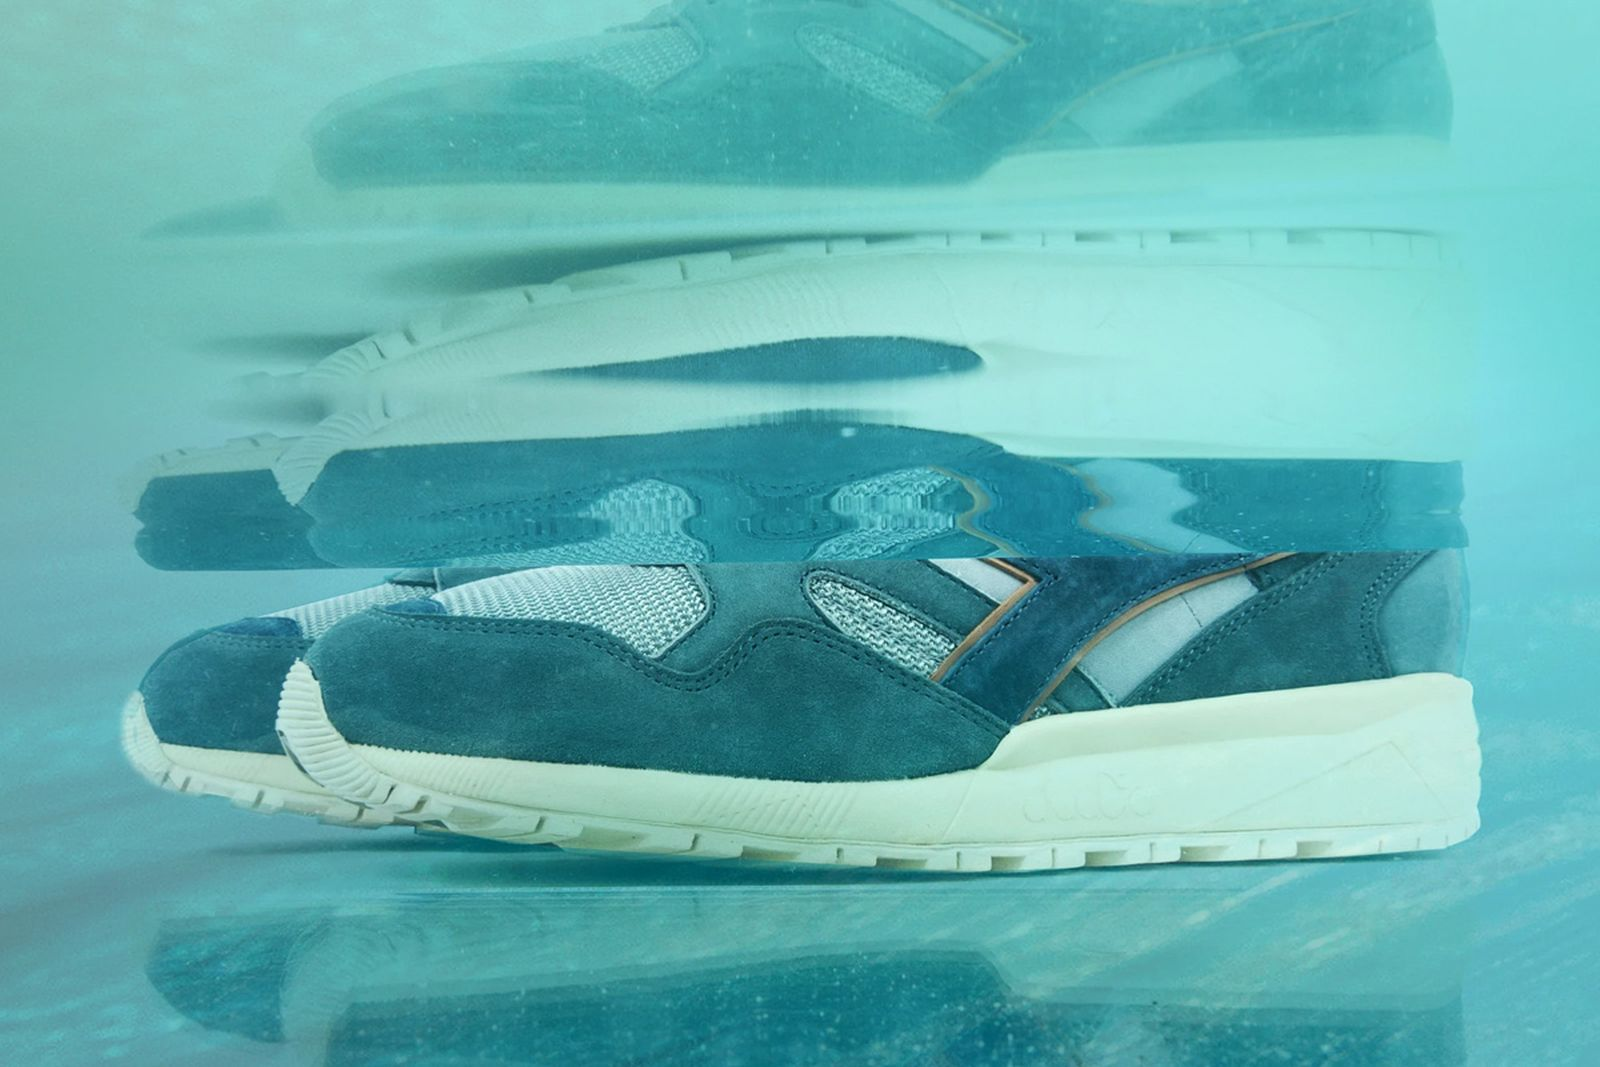 packer-diadora-n9002-molveno-release-date-price-product-07